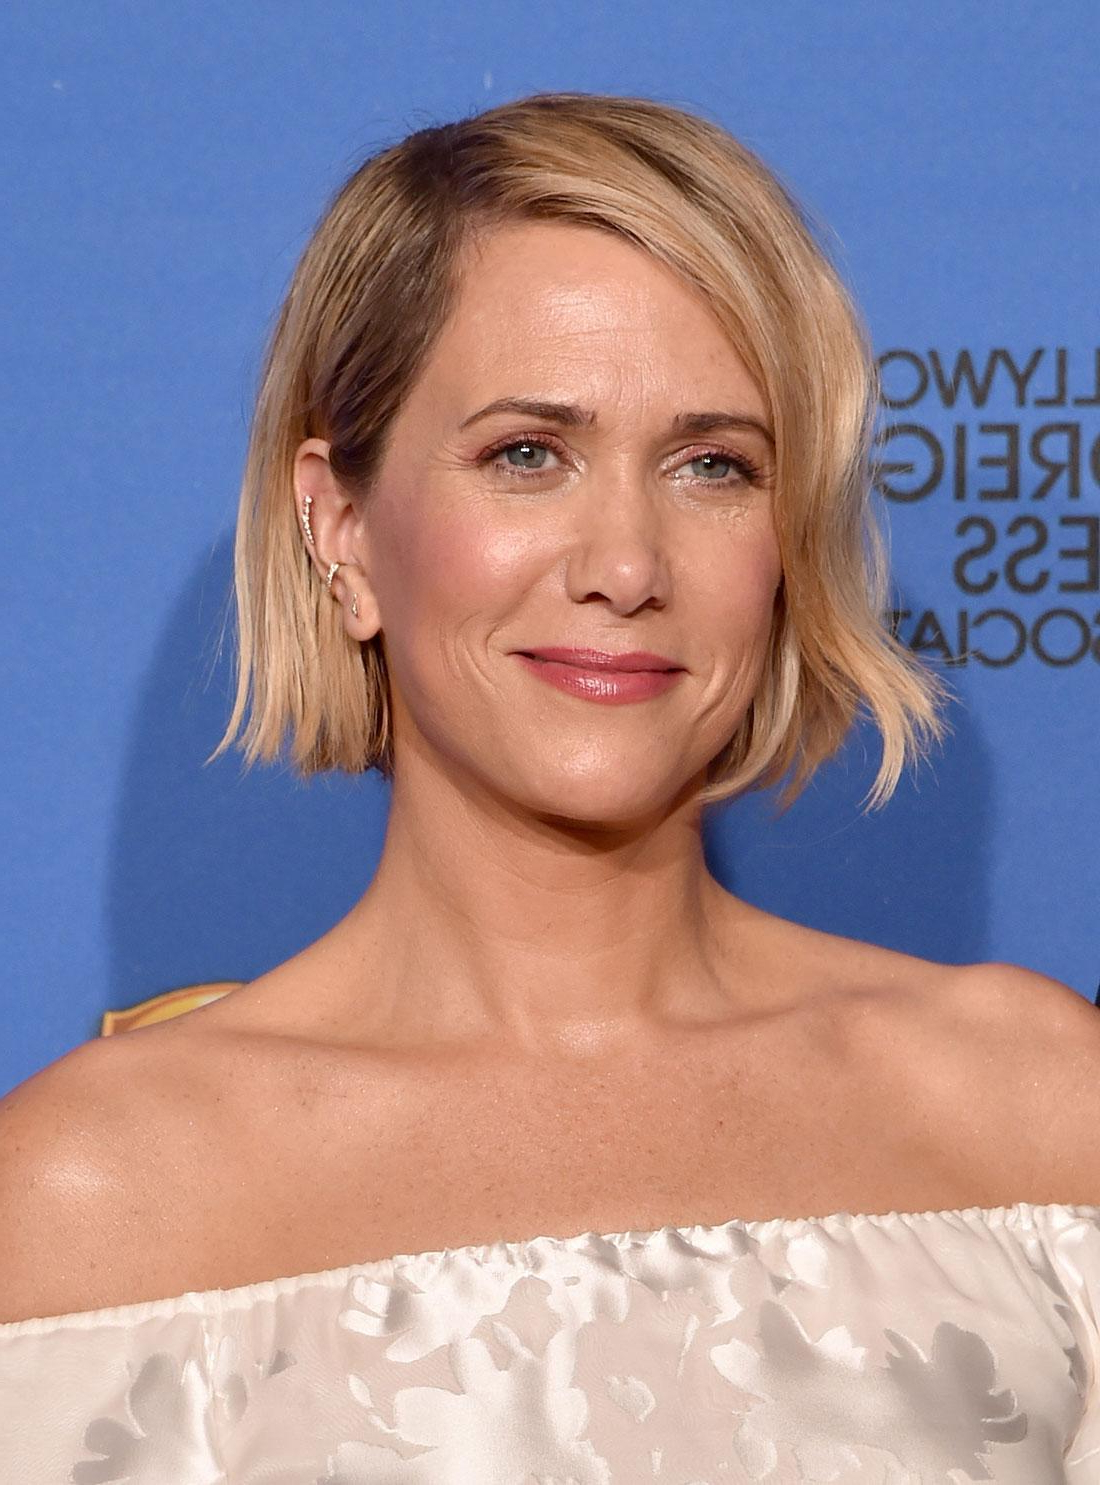 12 Short Haircuts To Flatter Every Face Shape   Madison Reed For Short Haircuts For A Square Face Shape (View 10 of 25)